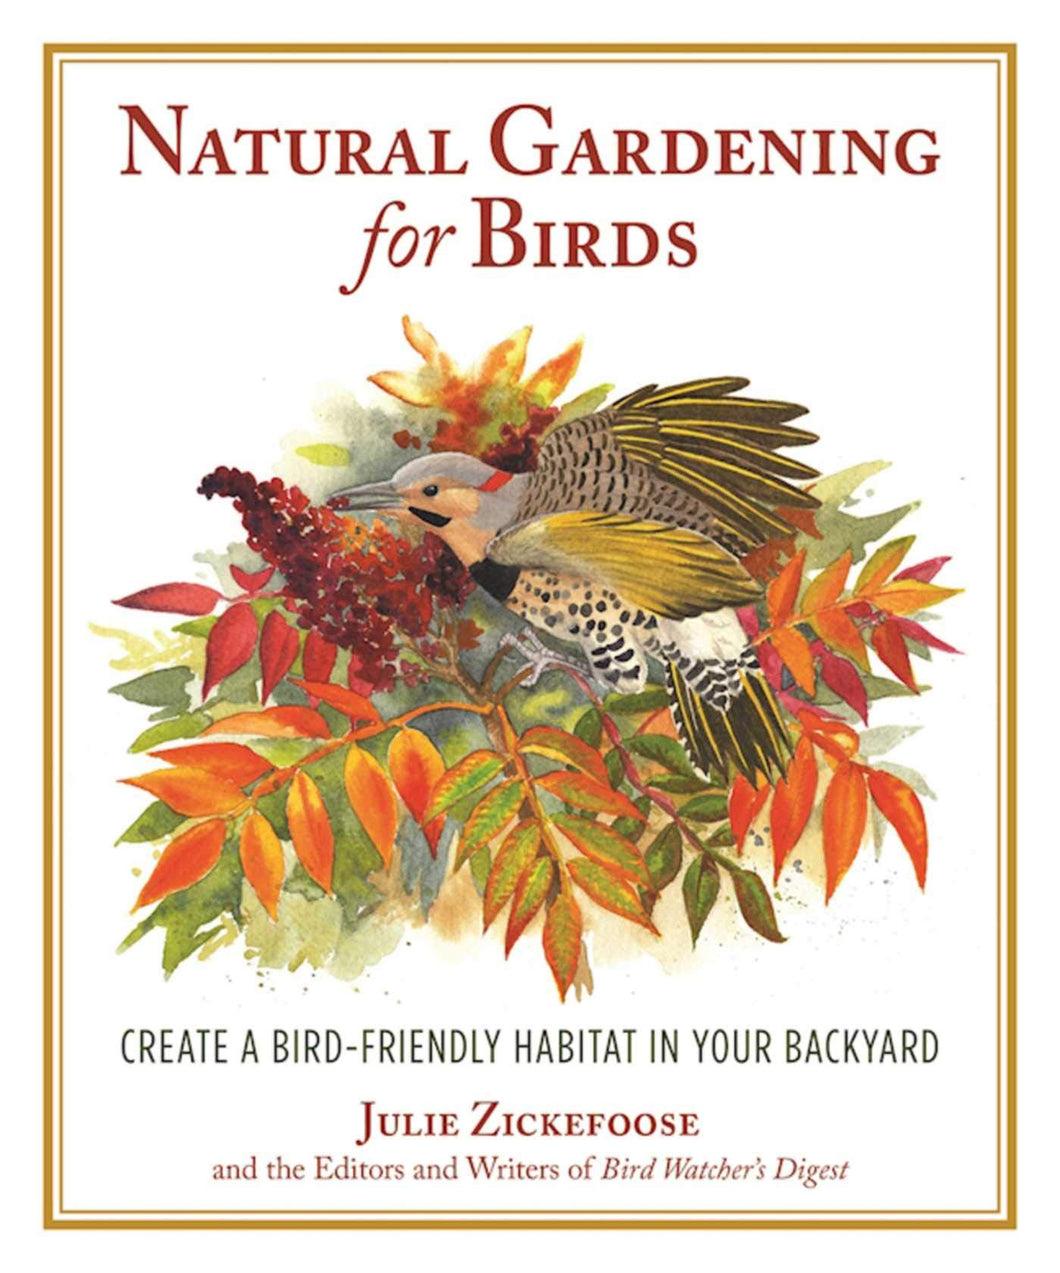 Natural Gardening for Birds: Create a Bird-Friendly Habitat in Your Backyard - myorganicals